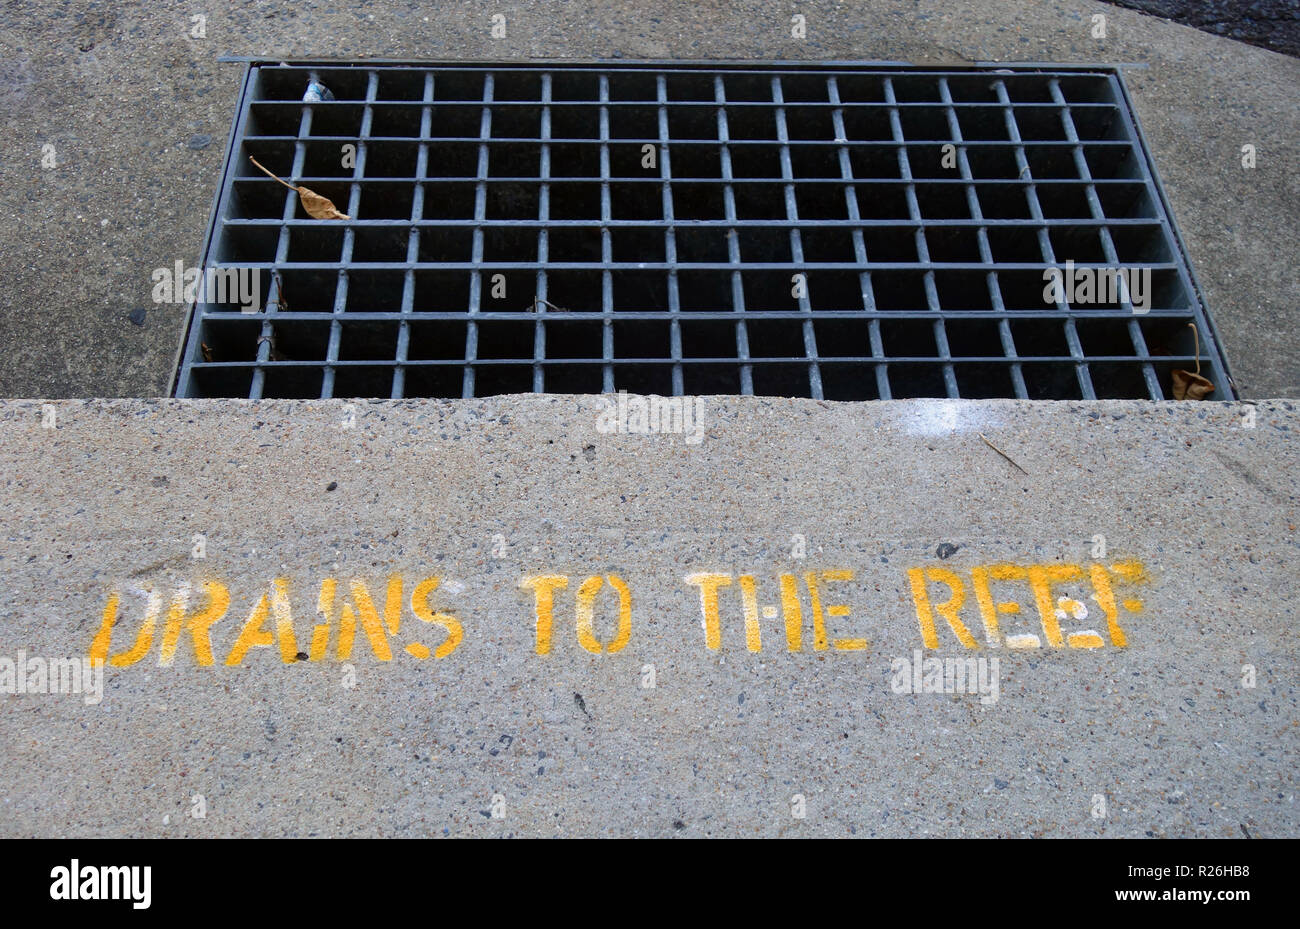 Stencilled sign reading Drains to Reef reminding people about runoff water quality, Cairns, Queensland, Australia. No PR - Stock Image